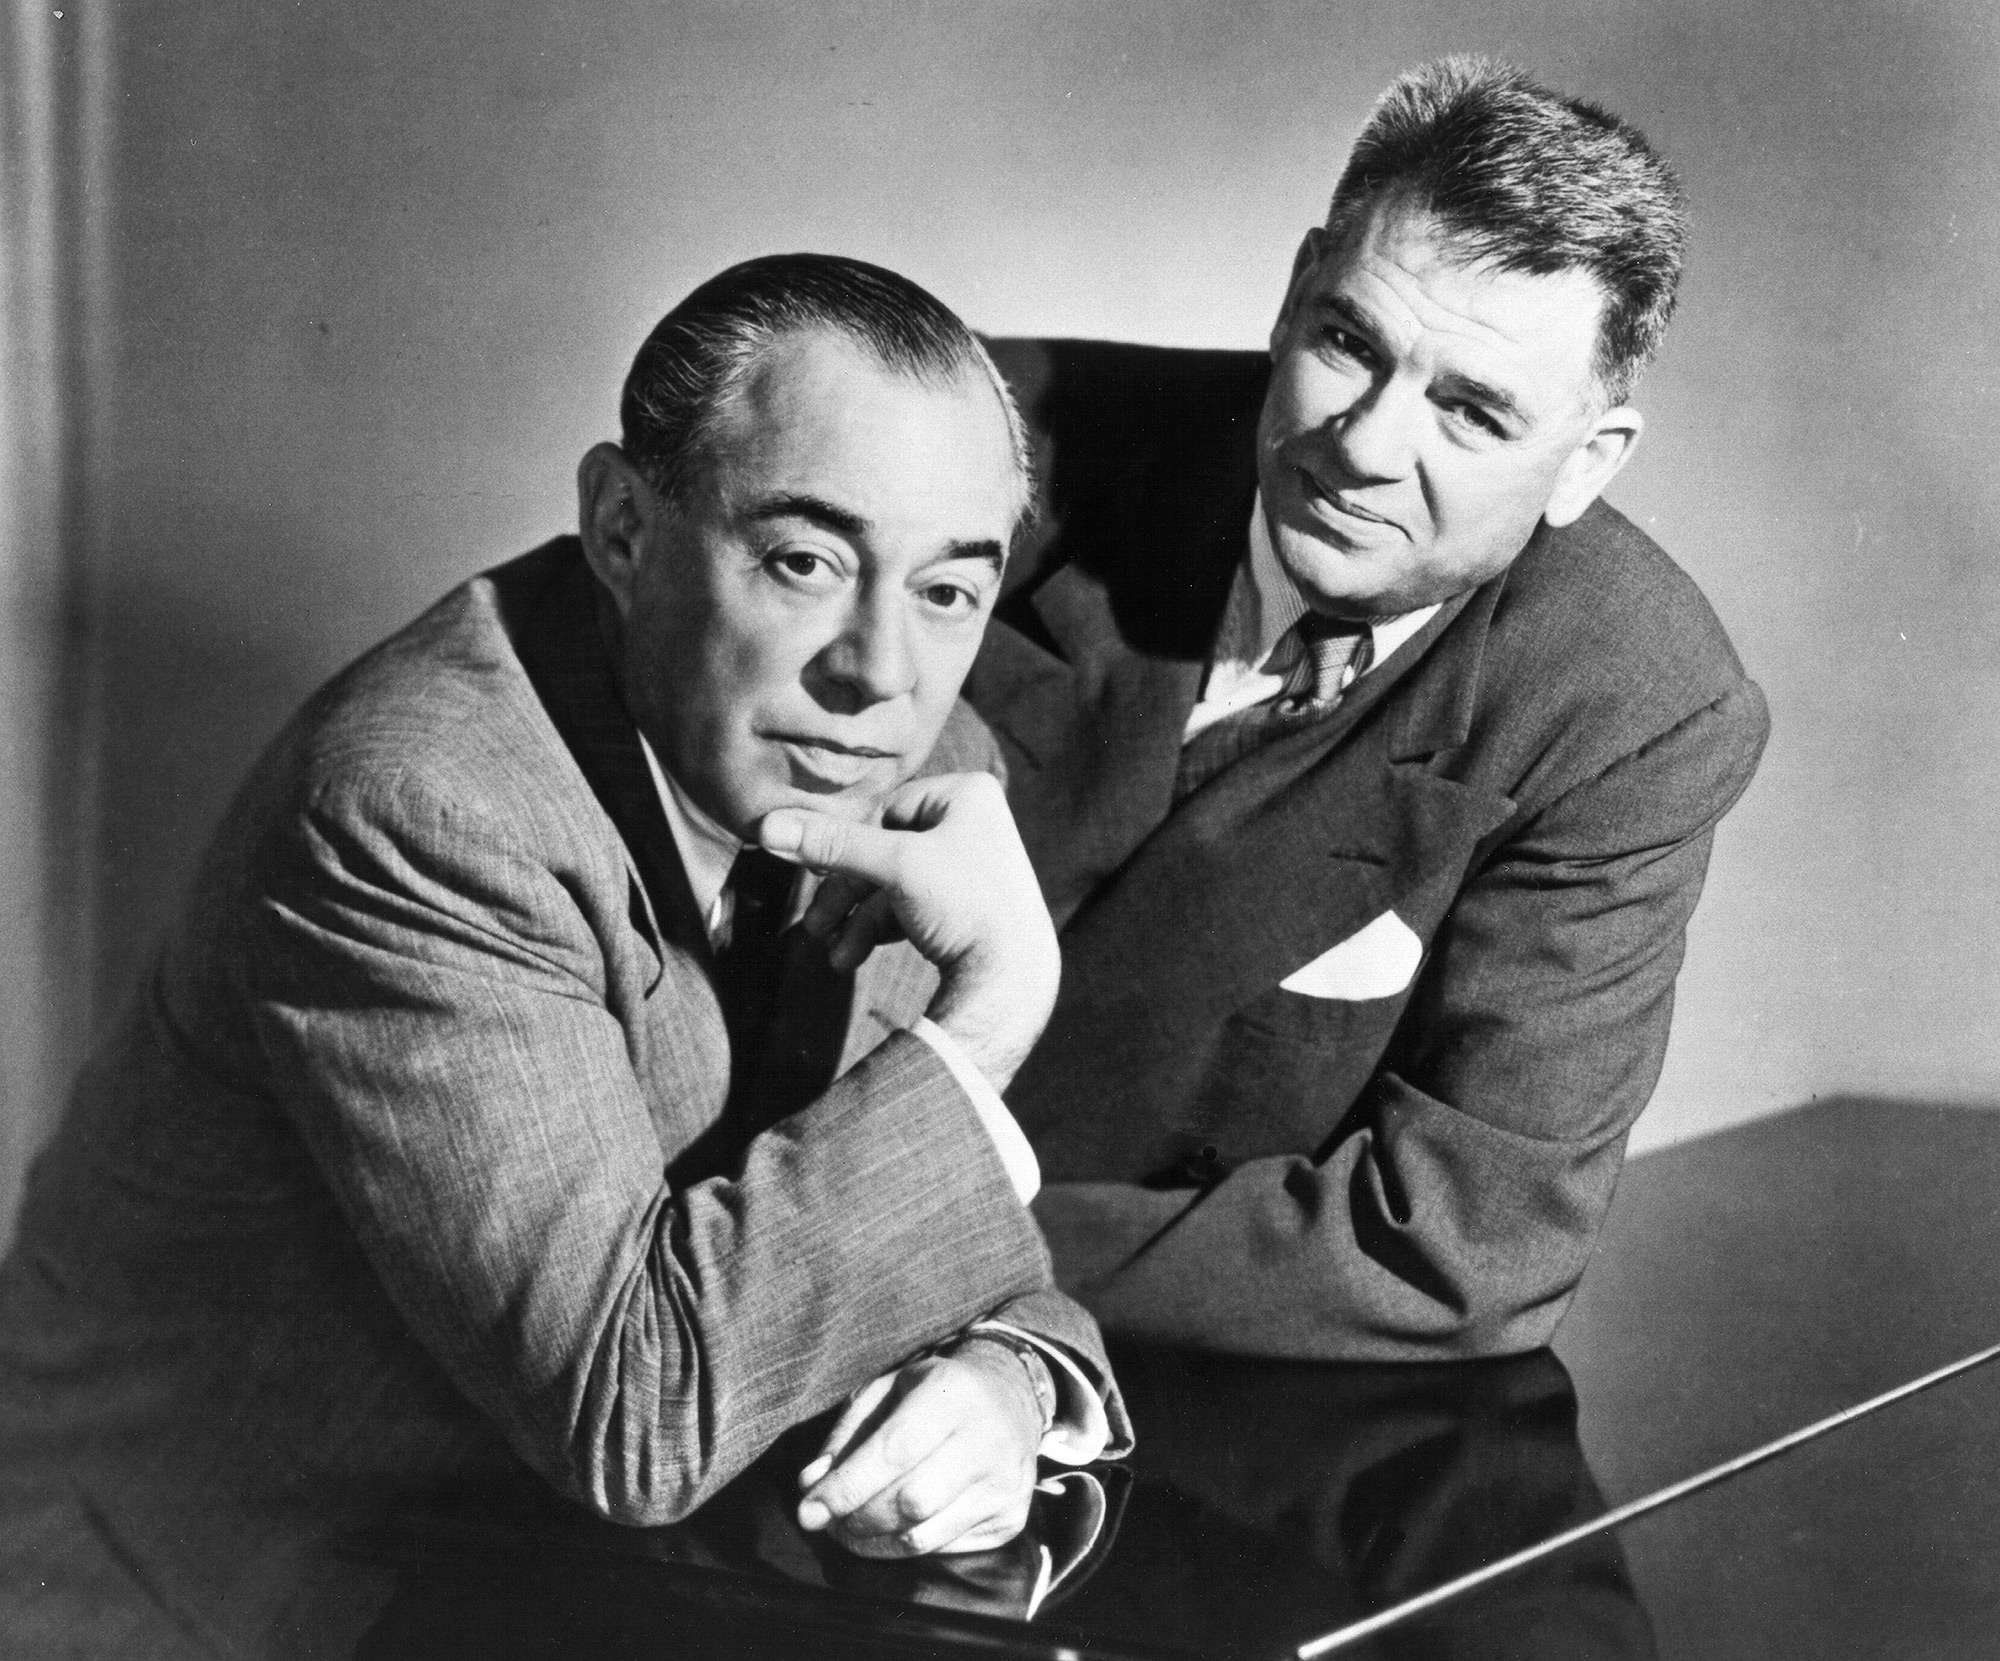 Rodgers & Hammerstein Portrait At The Piano